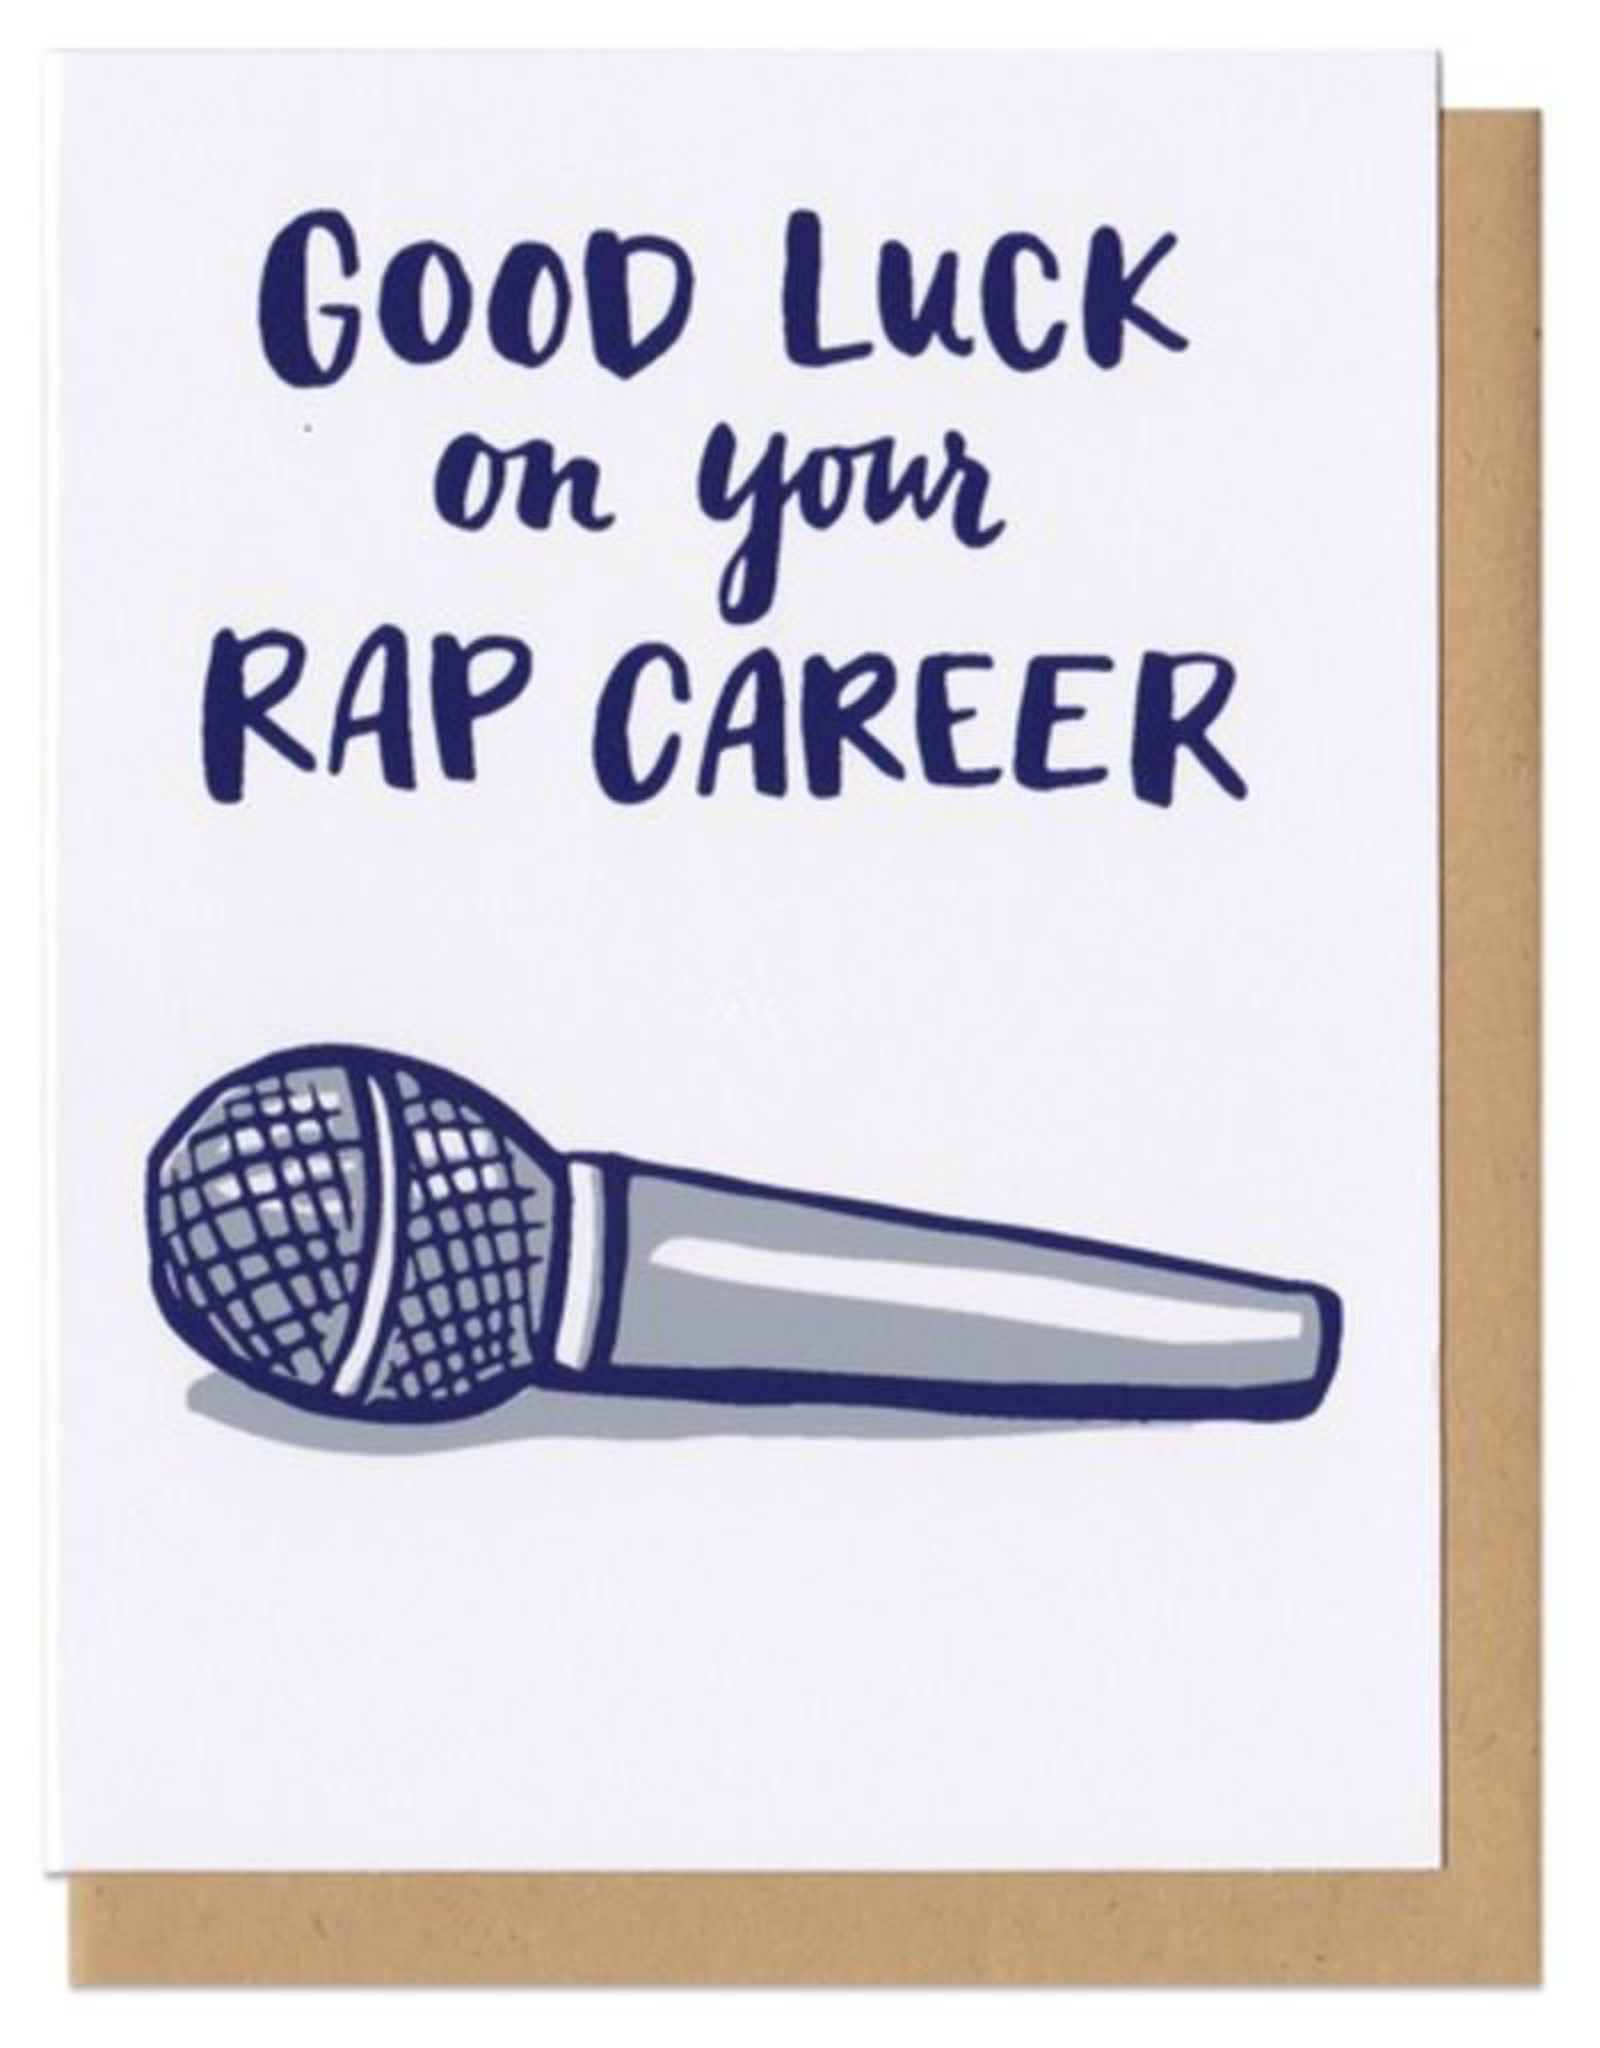 Frog and Toad Good Luck Rap Career Card